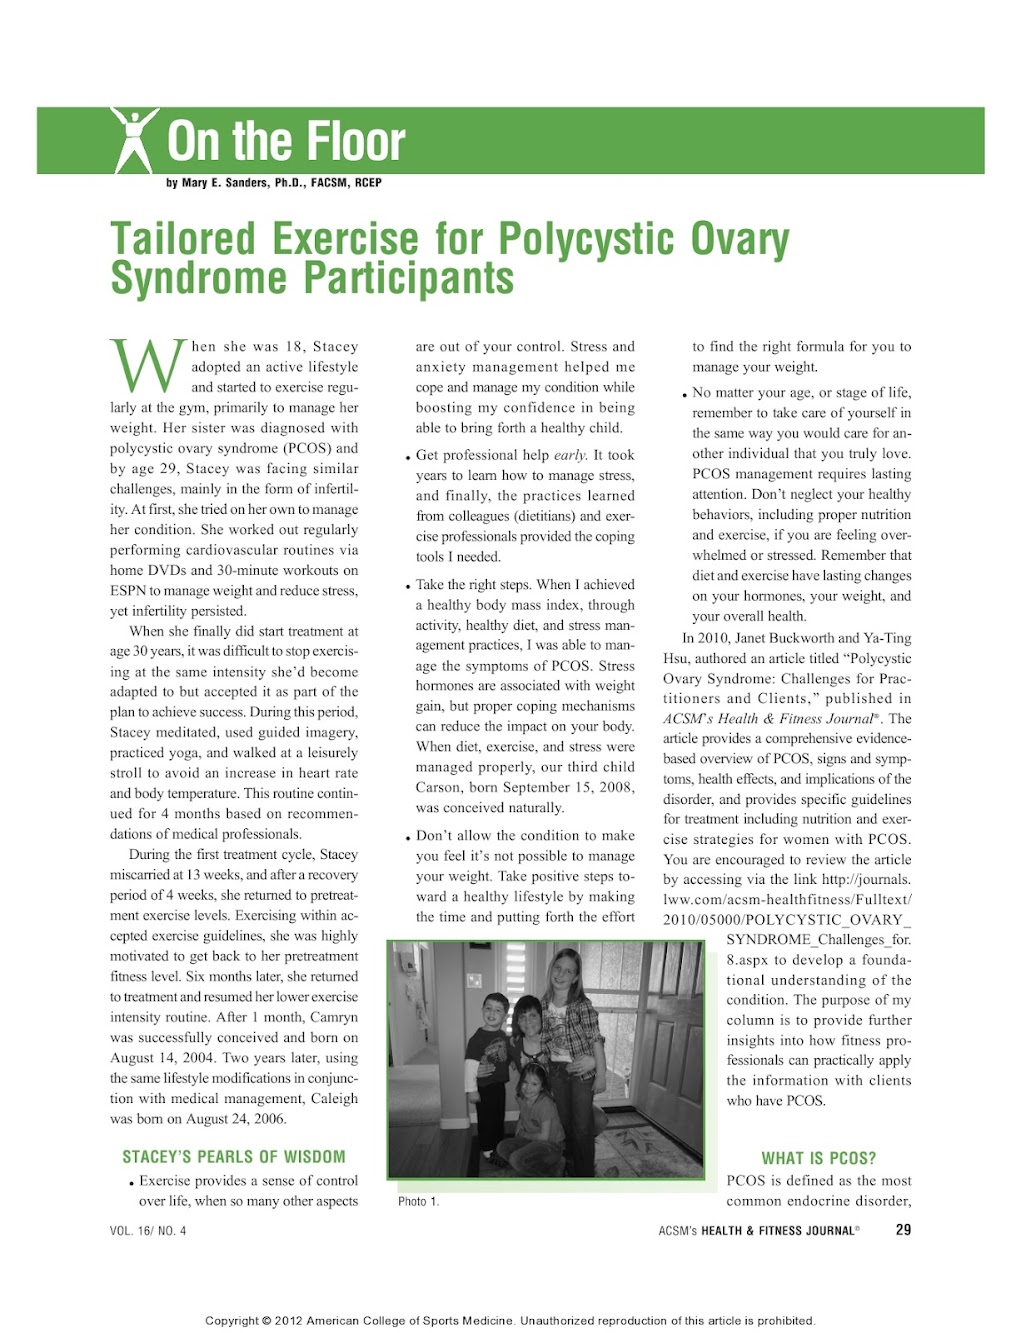 inCYST, Power Up for PCOS, team up with ACSM for exercise article